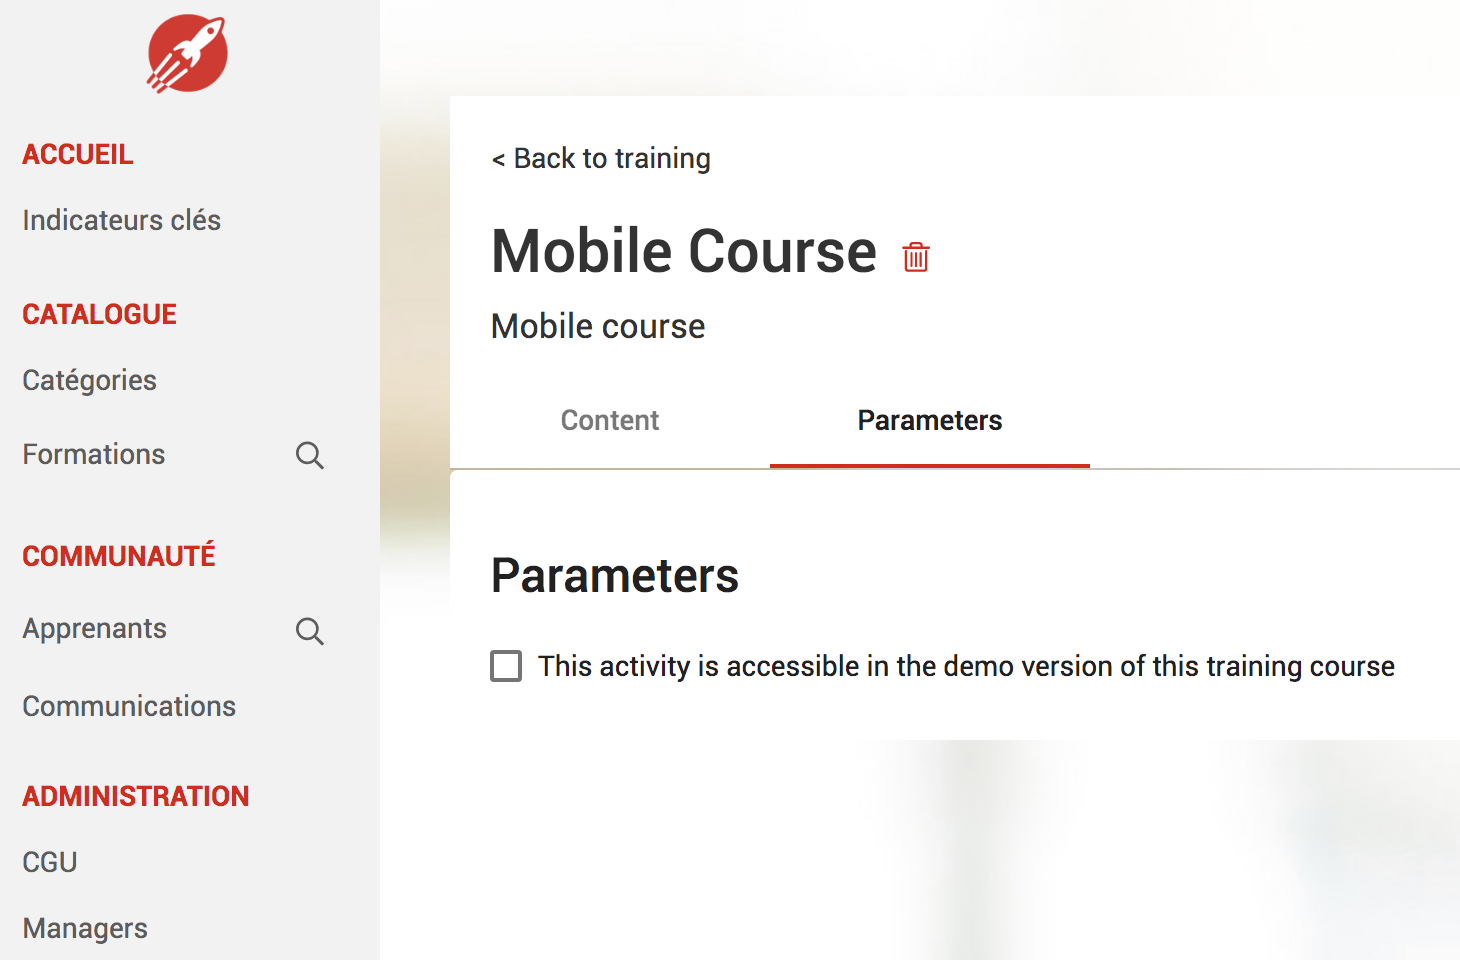 mobile-course-parameters.png